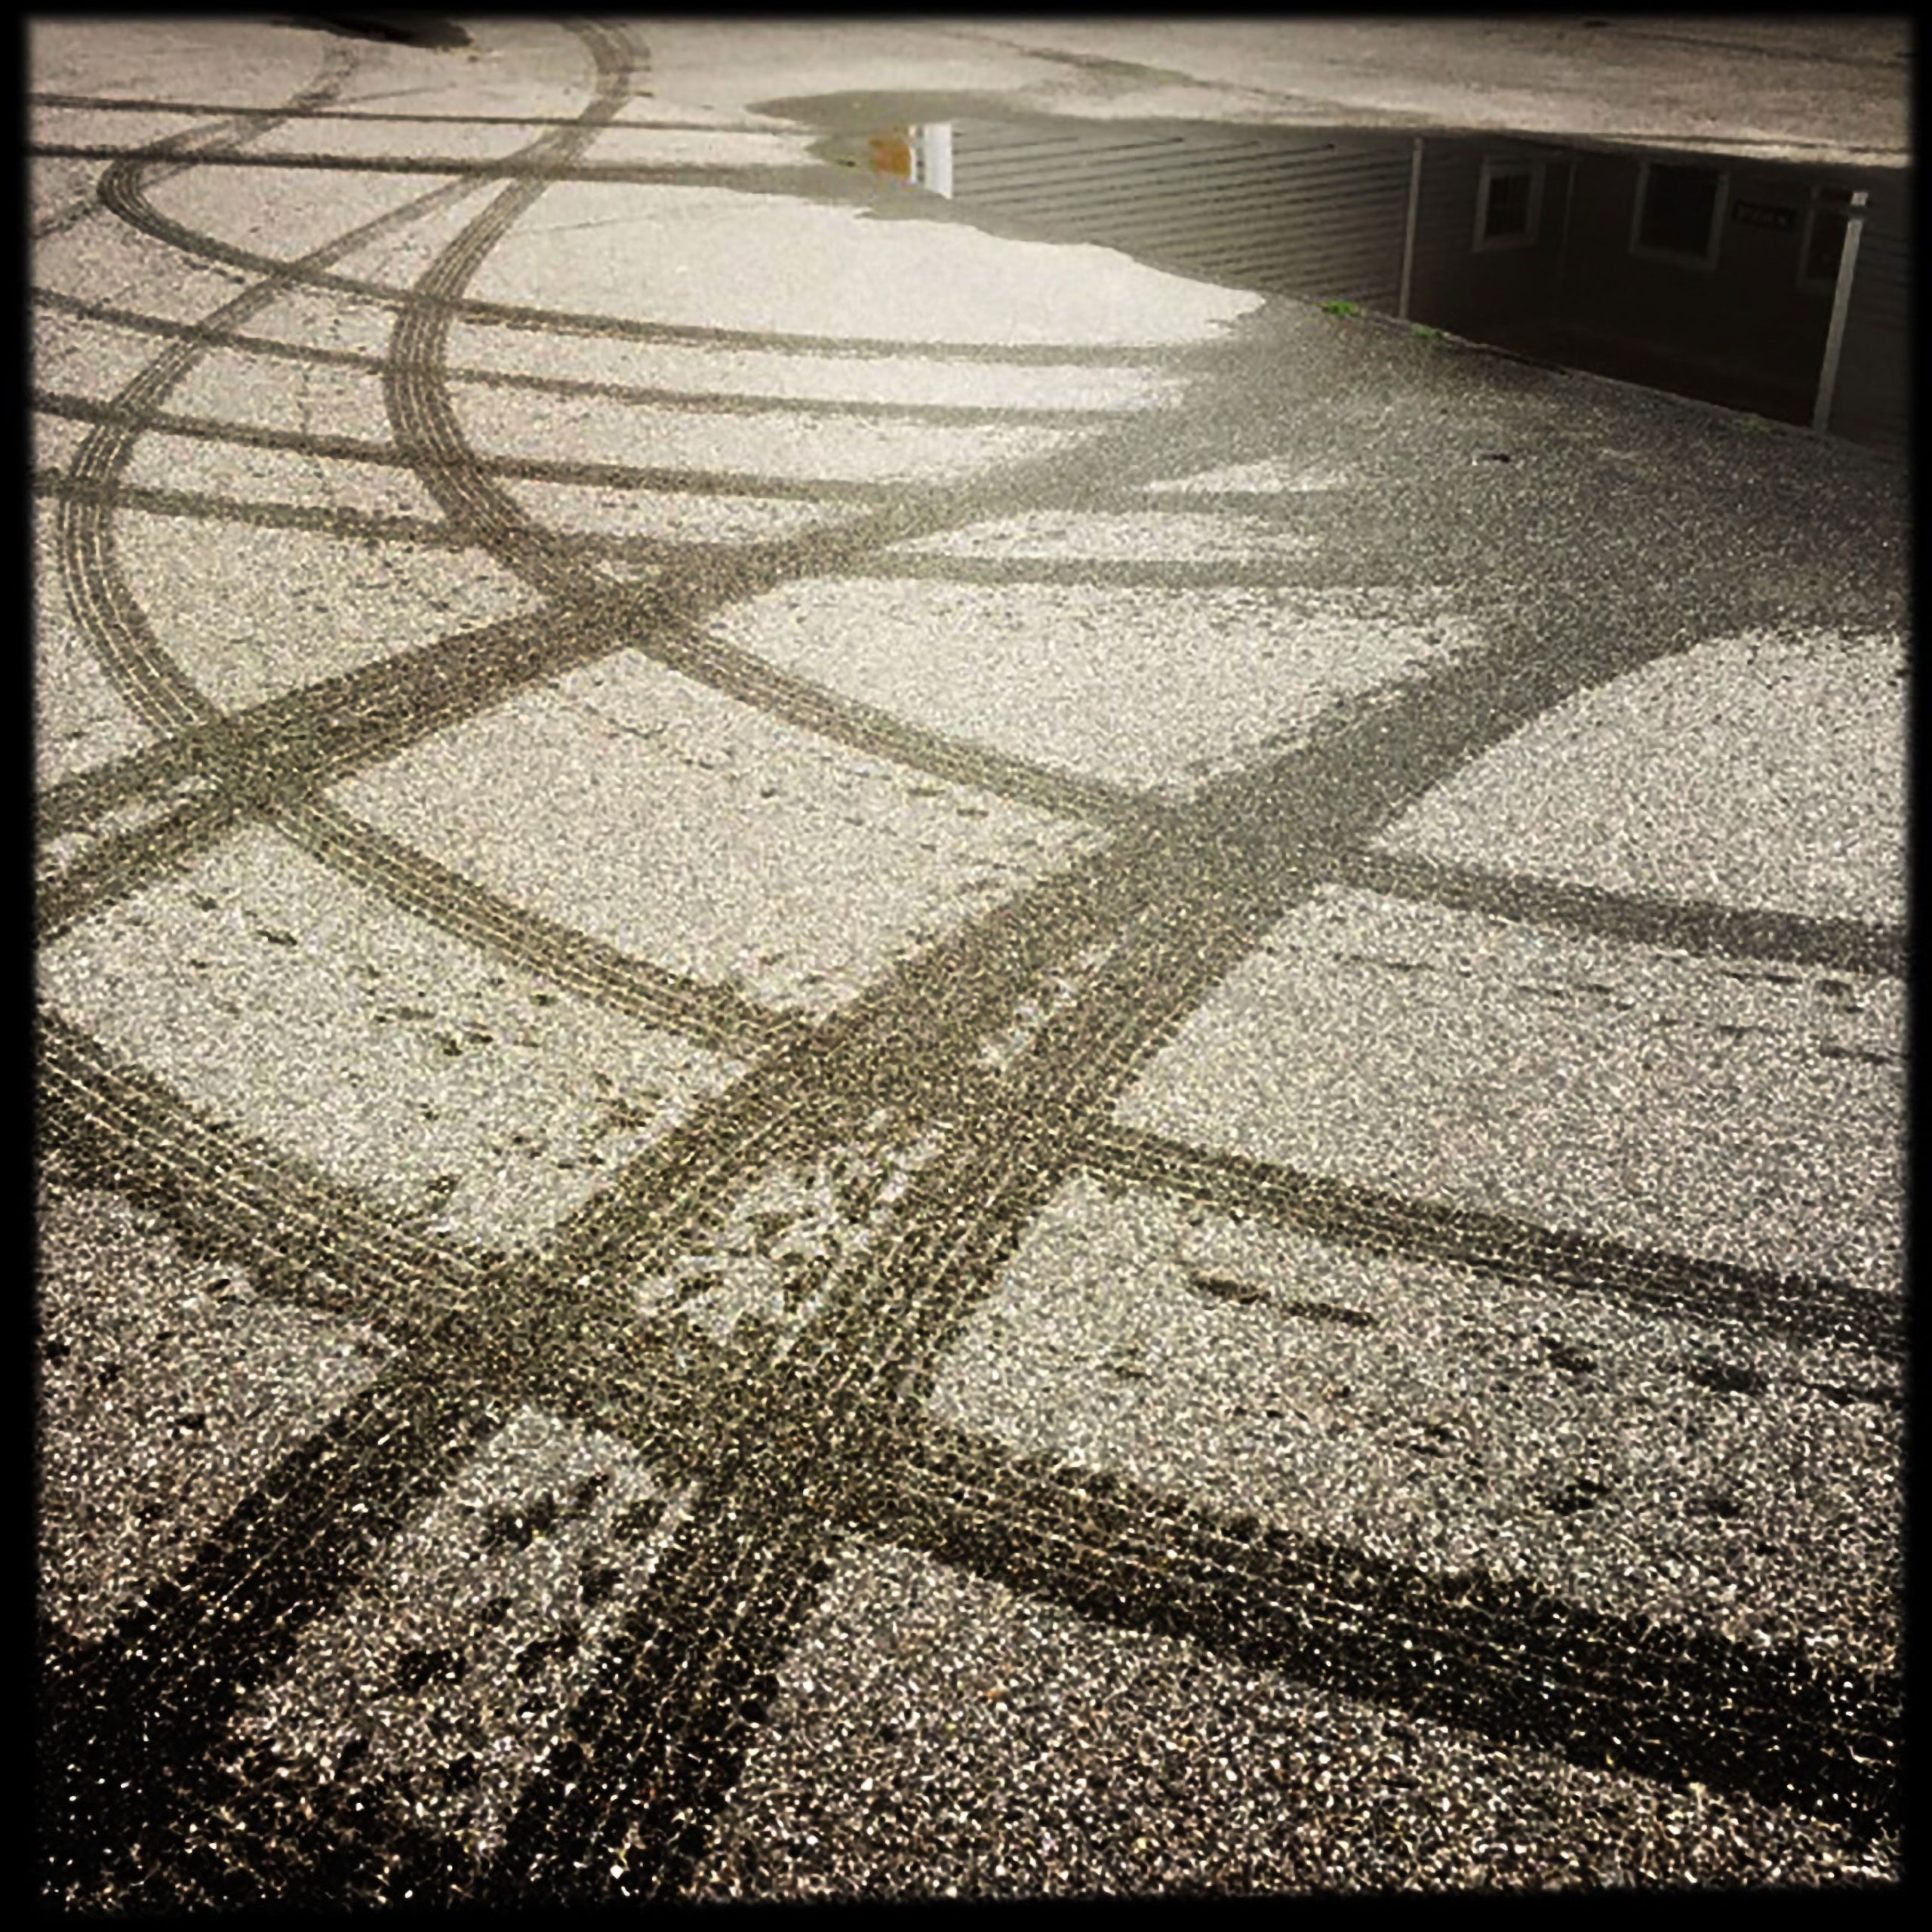 serpentine tire tracks  in street at warren roos photo studio south Portland Maine